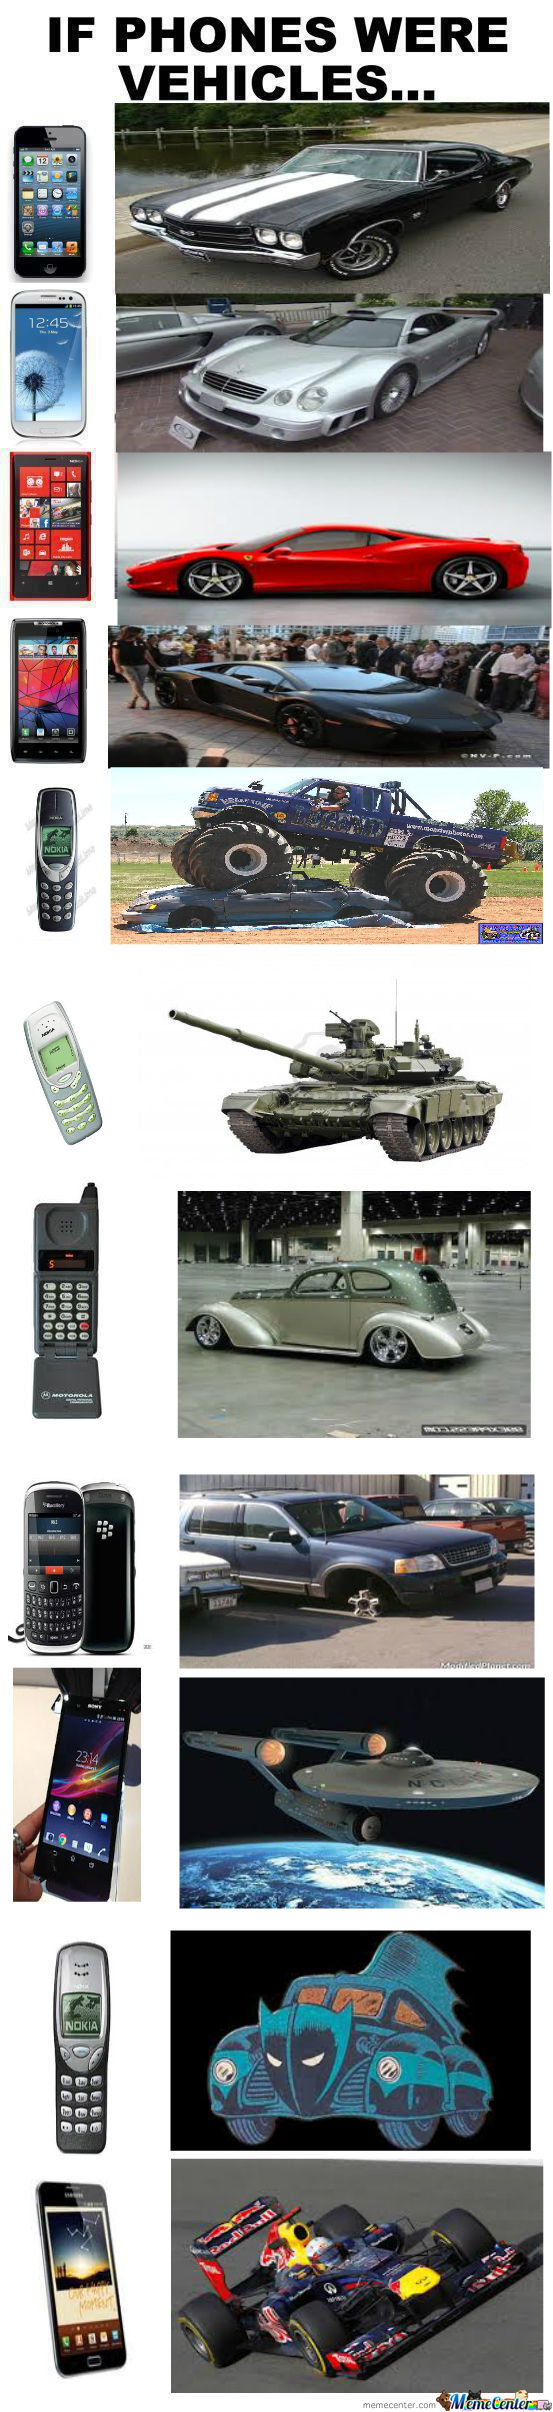 [RMX] If Phones Were Vehicles